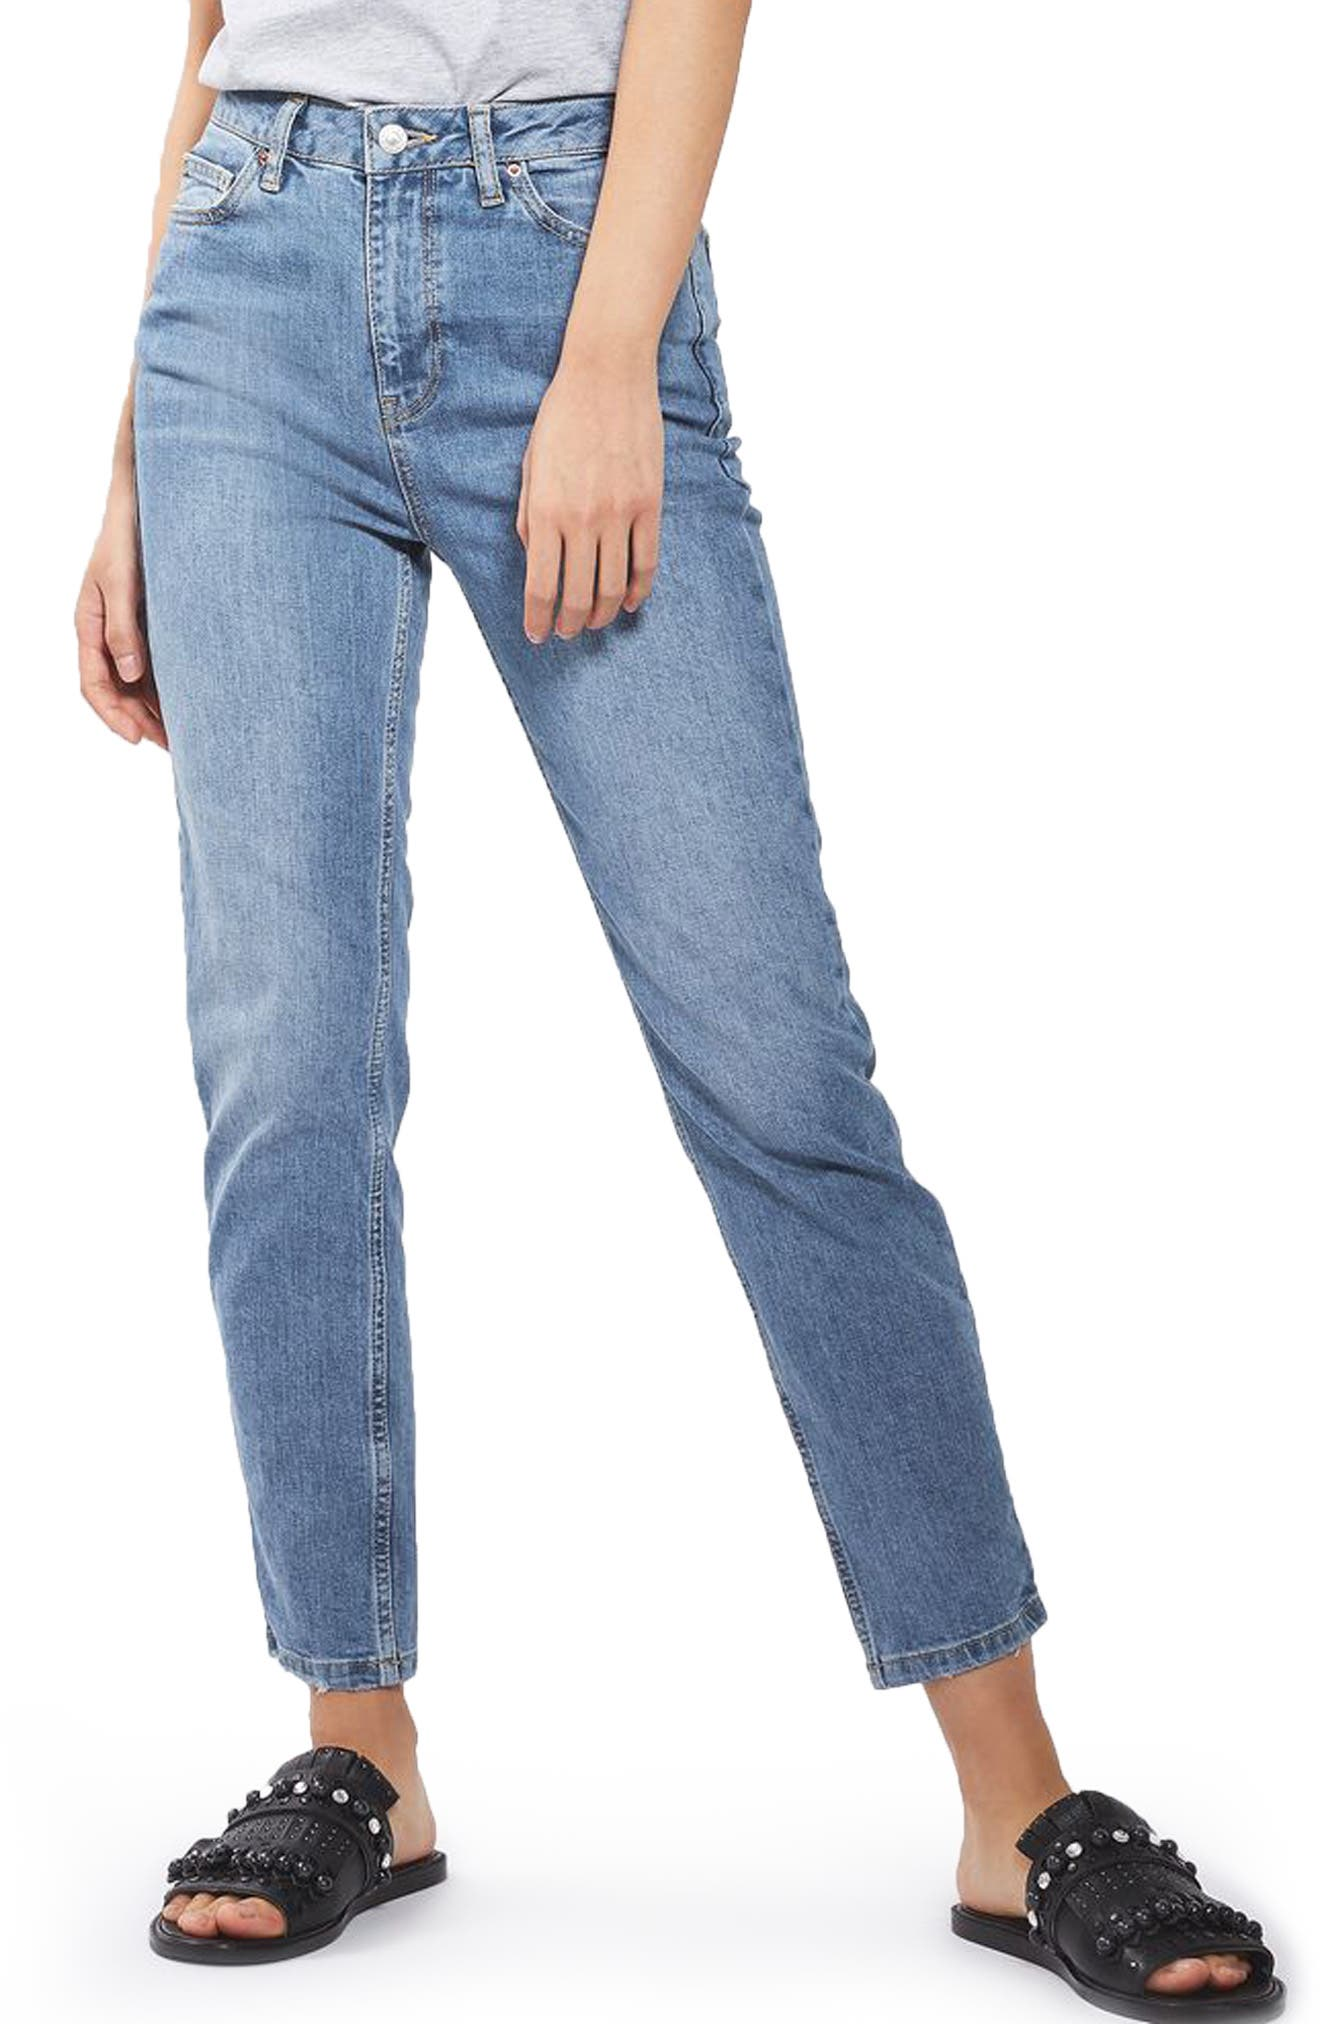 Alternate Image 1 Selected - Topshop Orson Slim Fit Jeans